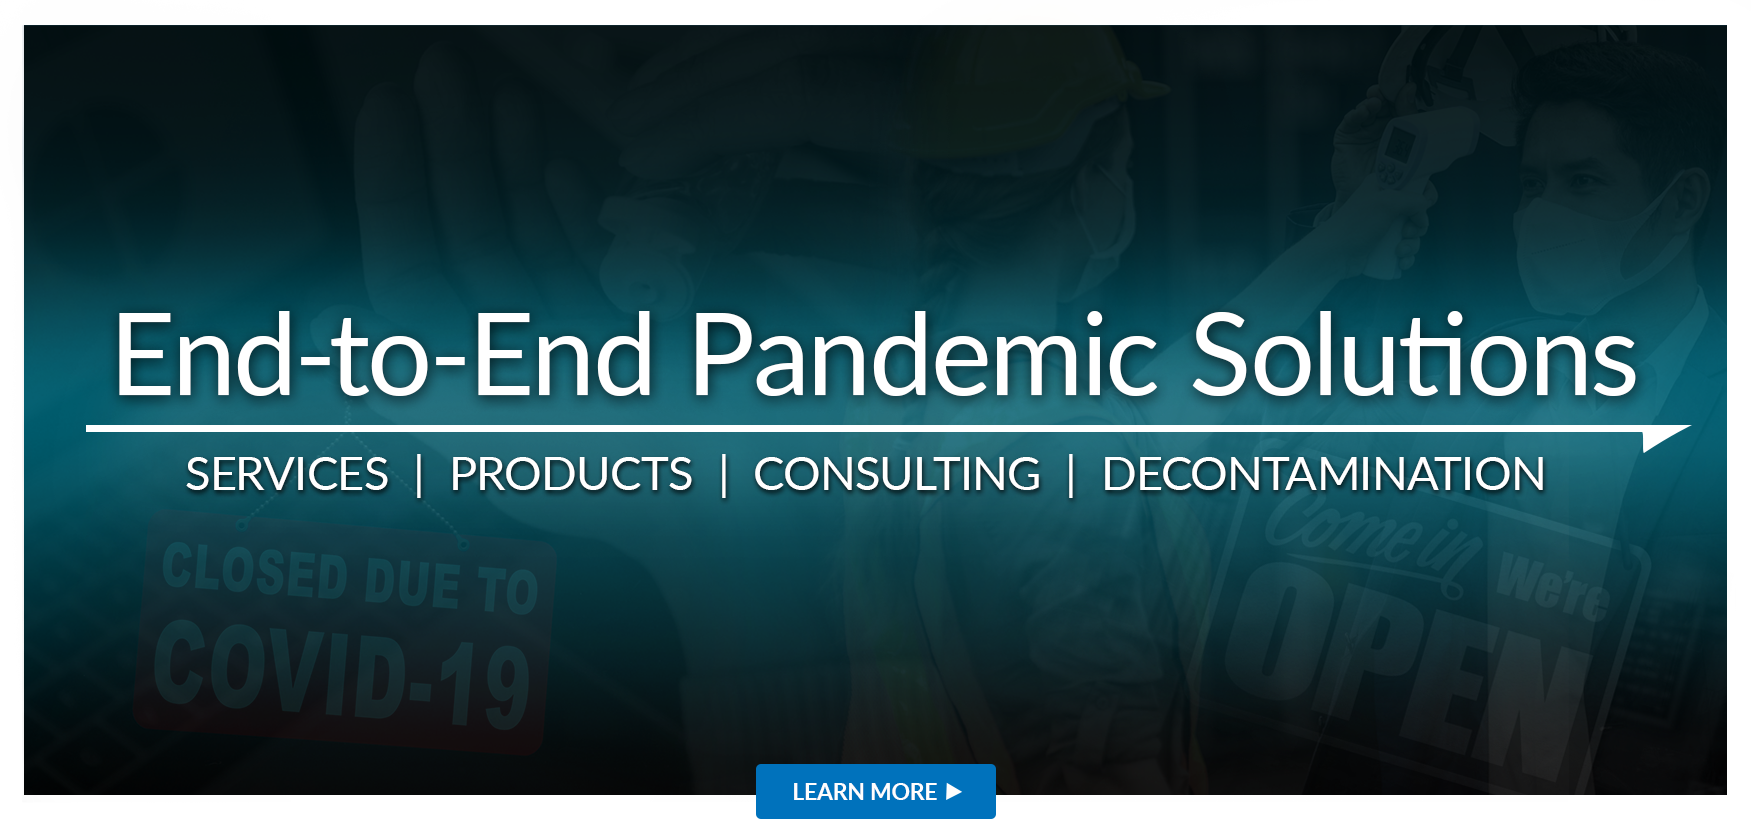 End to End Pandemic Solutions - Services, Products, Consulting